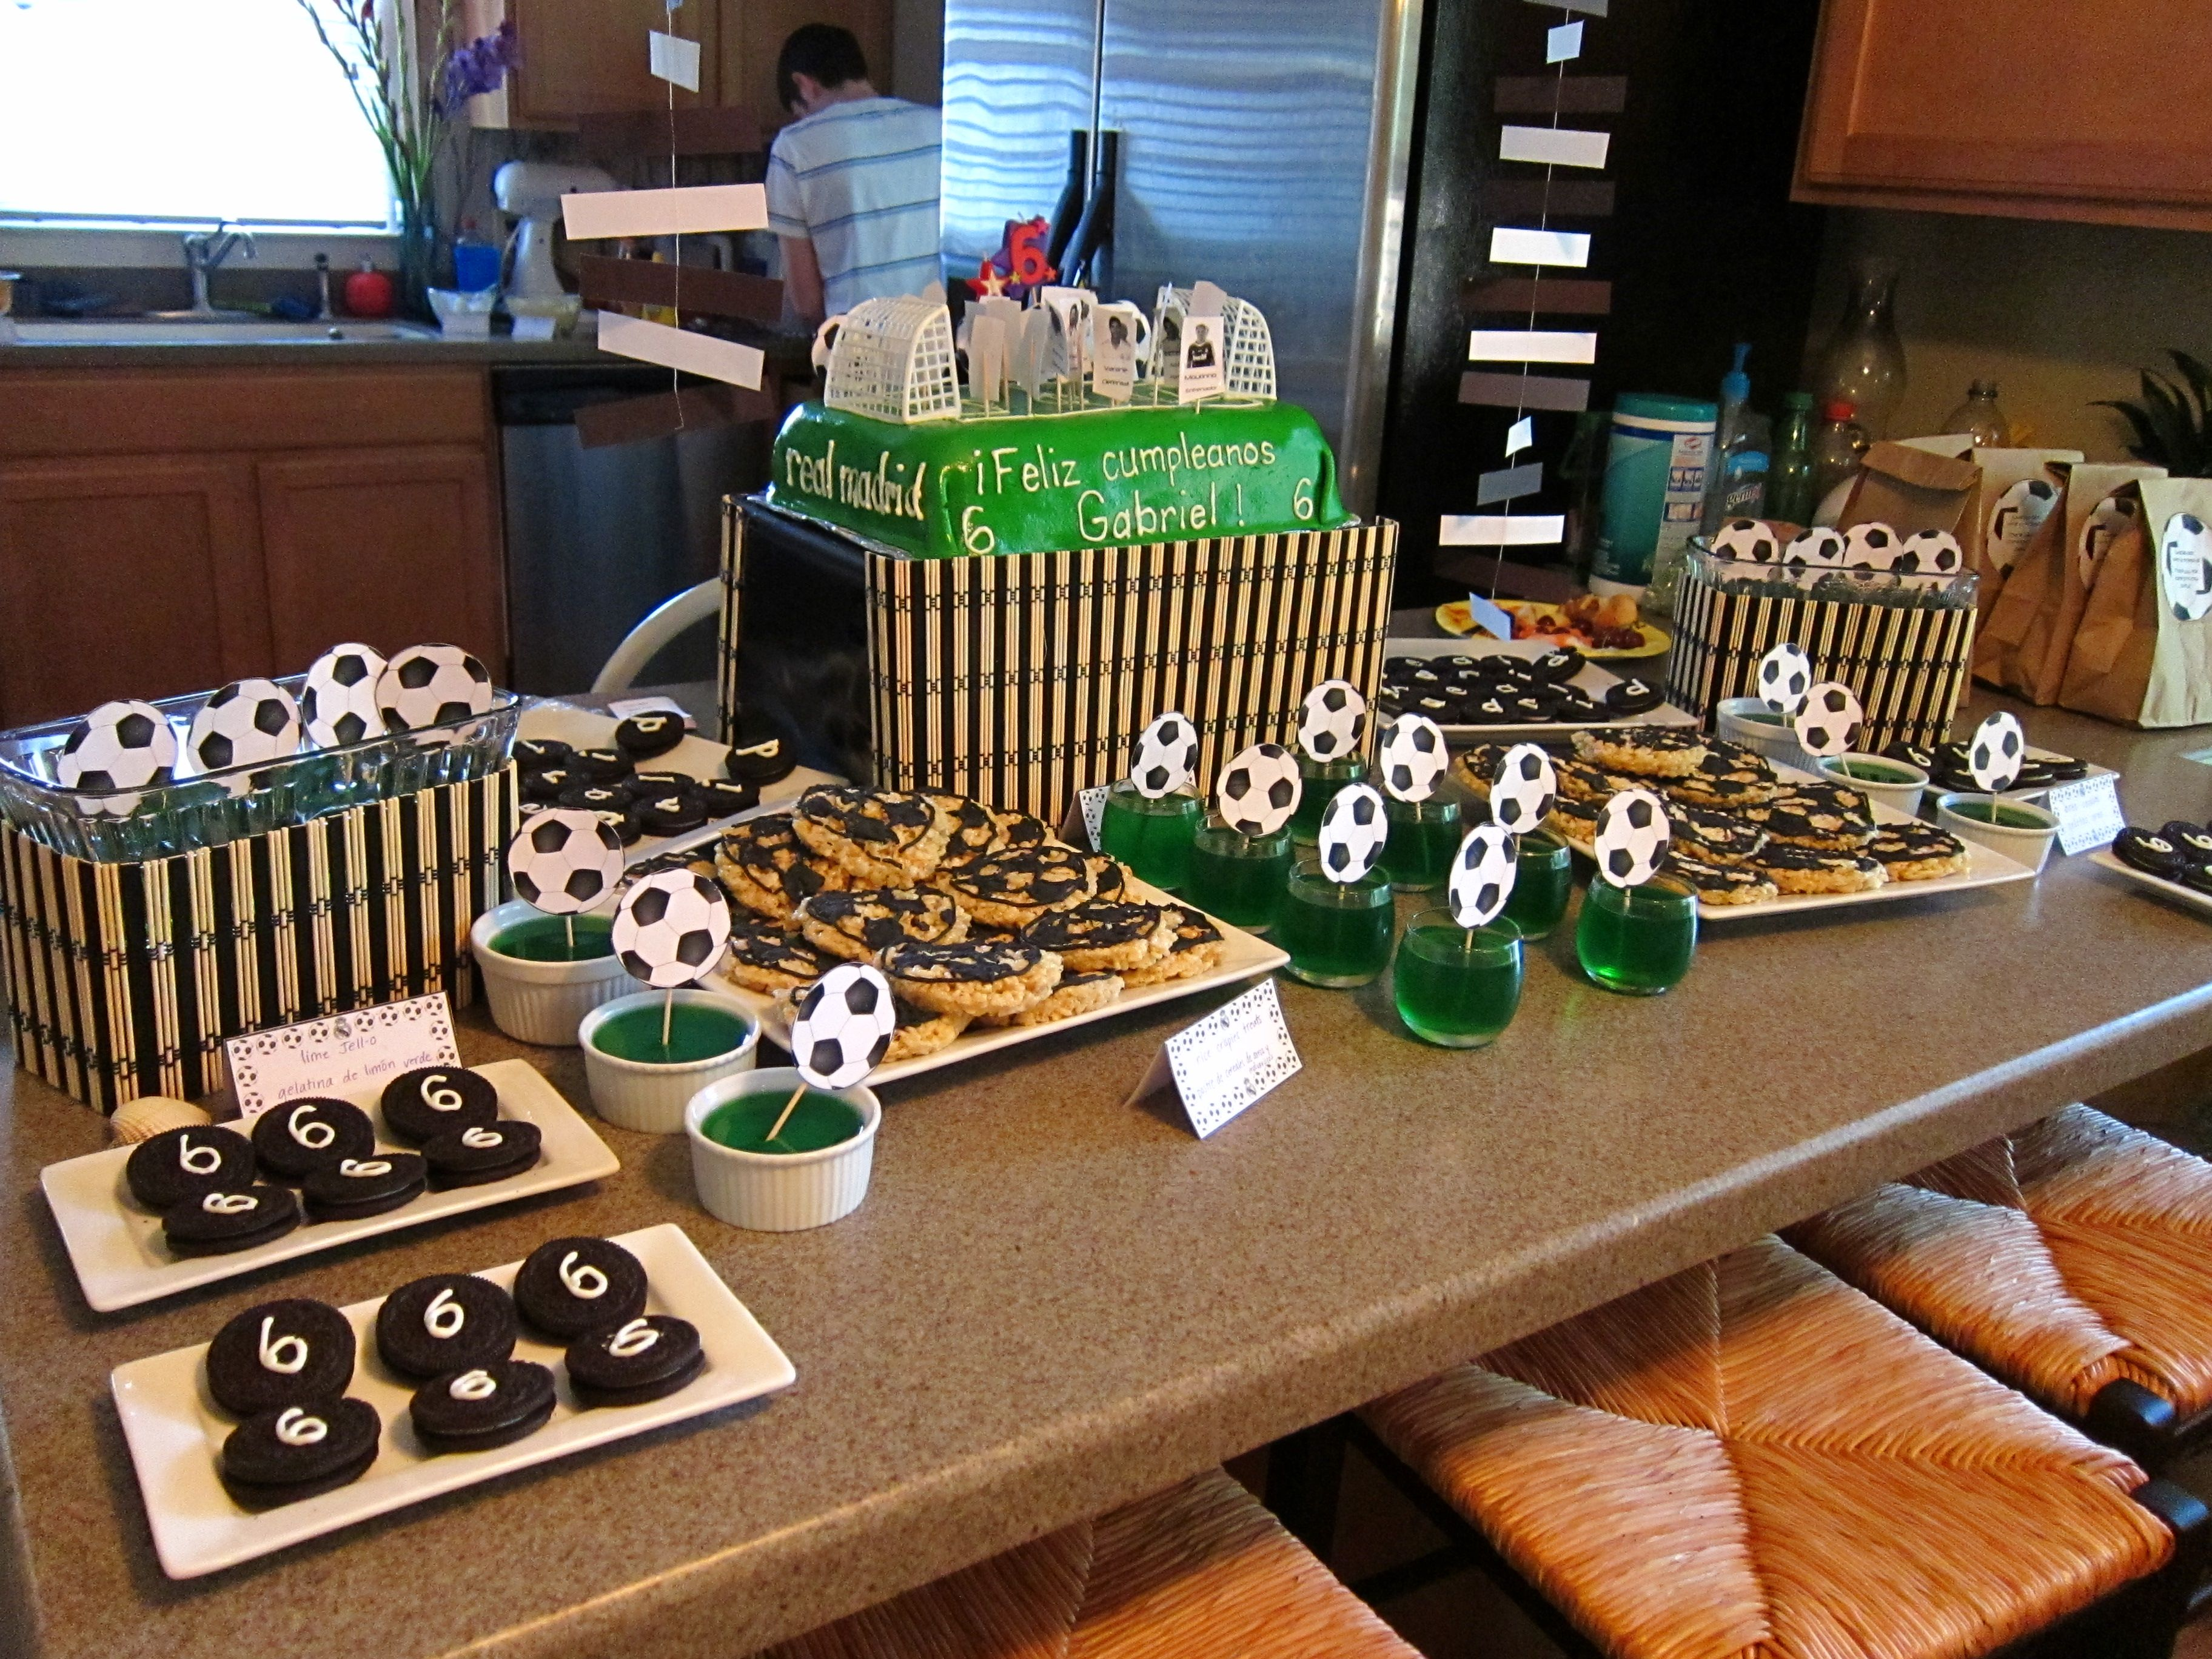 Juego De Mesa Real Madrid Real Madrid Soccer Birthday Party Mesa Dulce Pinterest